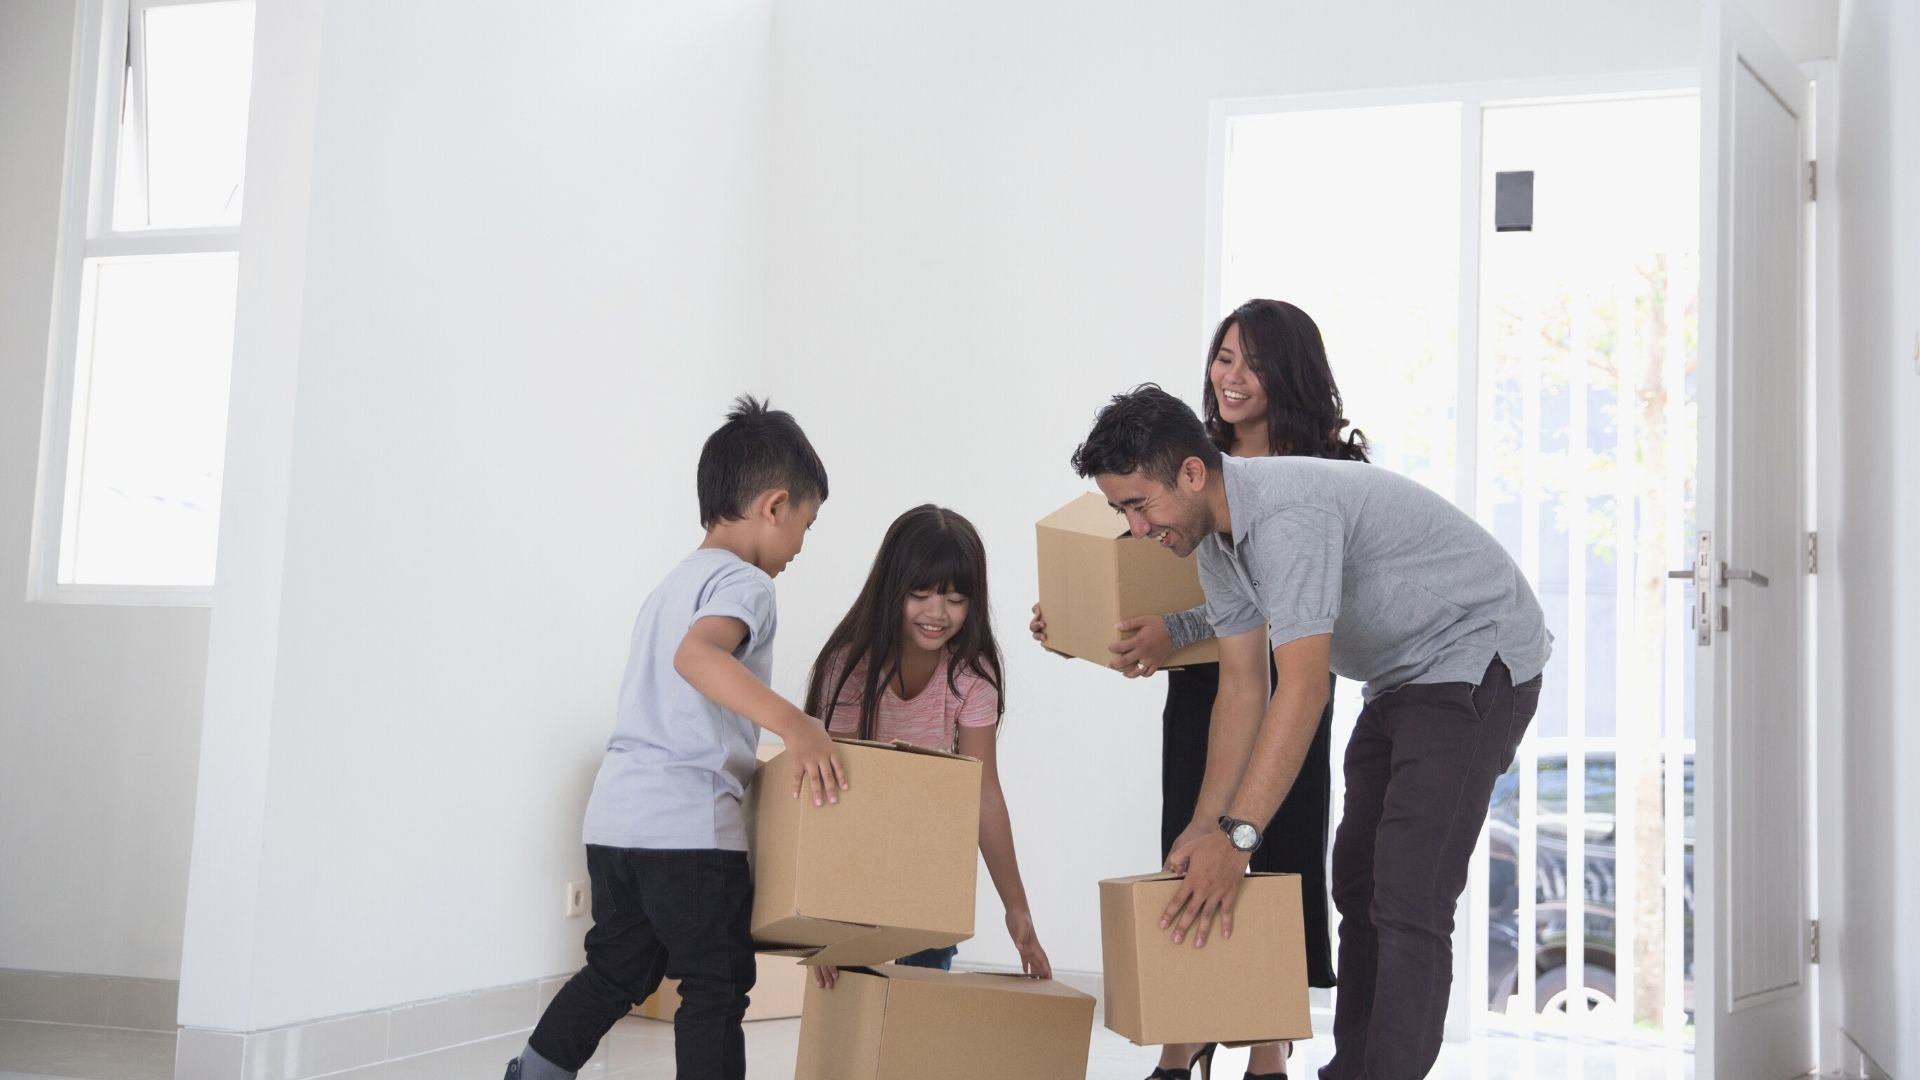 Inclusion equality asian family moving in packages boxes white room patio door